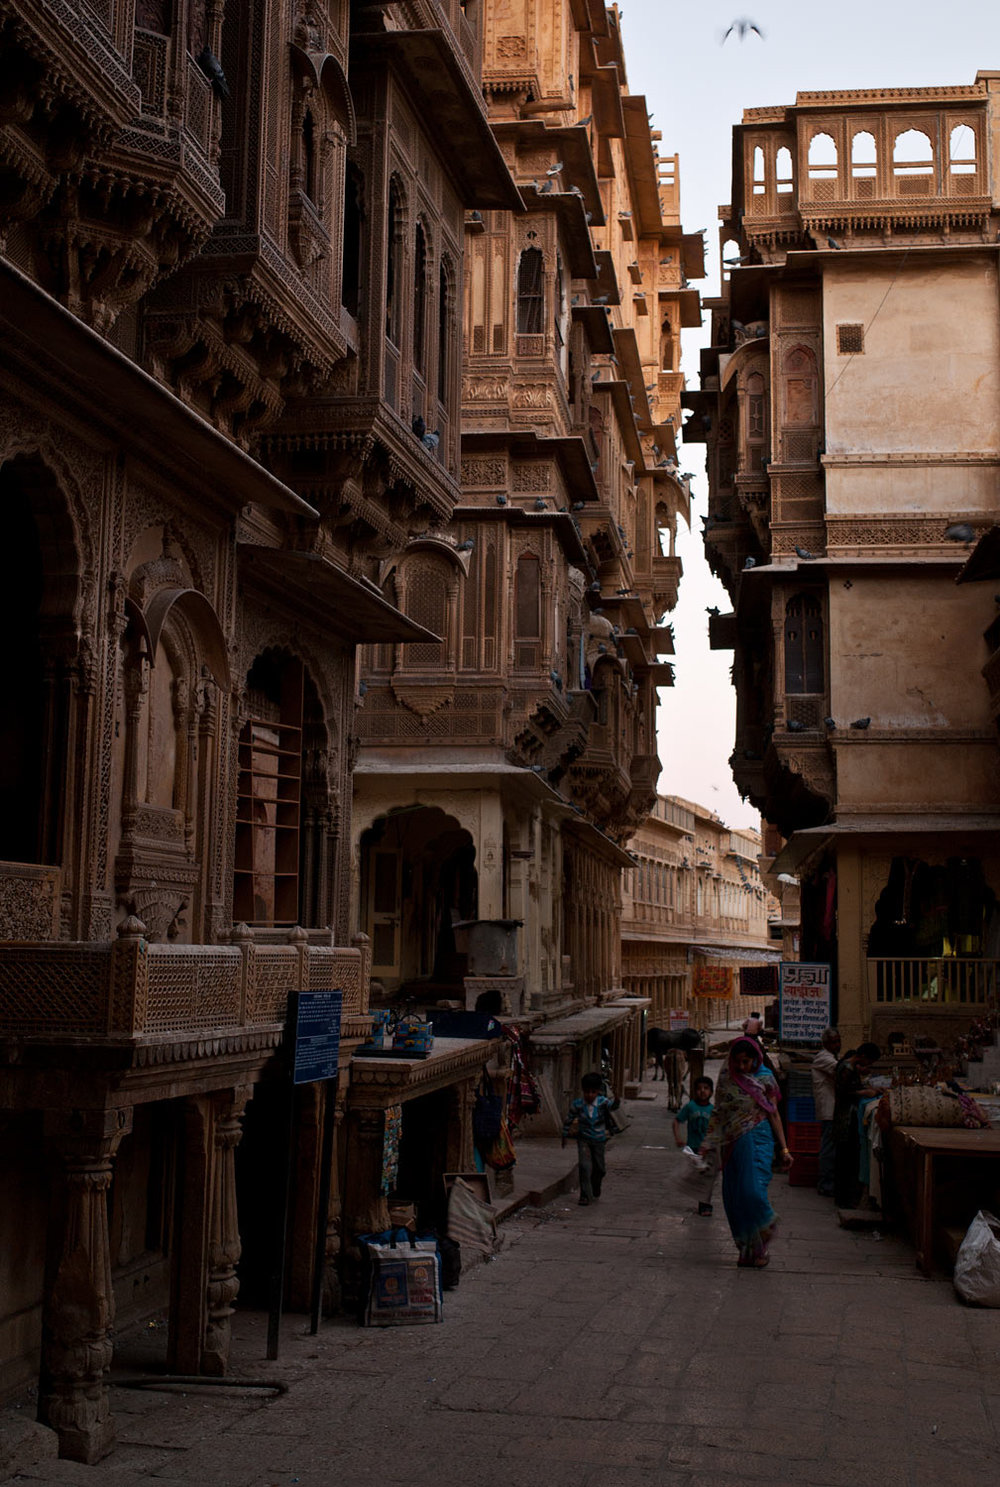 jaisalmer_rajasthan_india_campoamor_architects_01-1.jpg